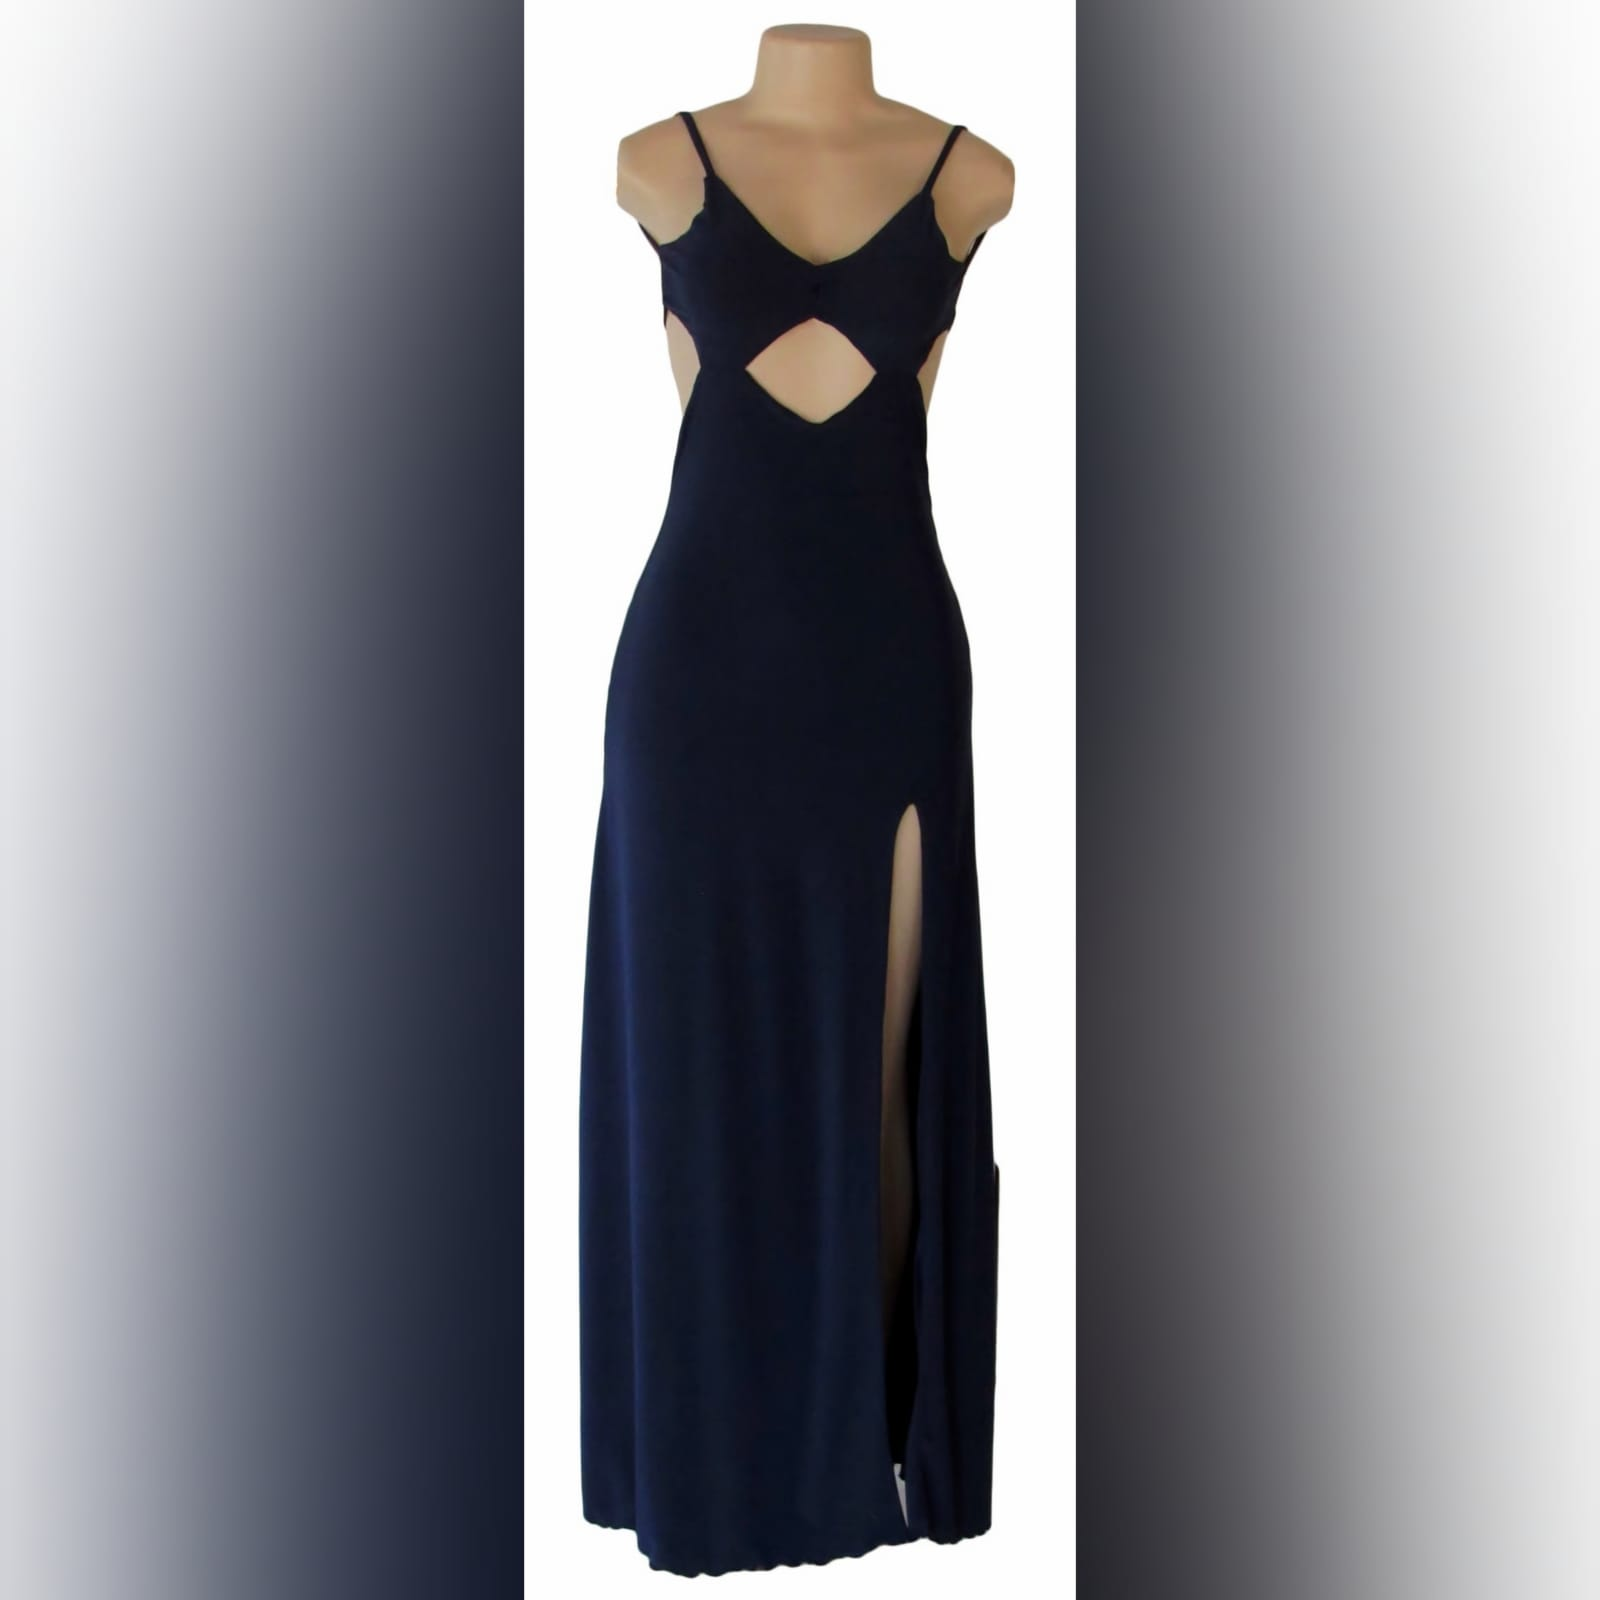 Navy blue long sexy evening dress 5 navy blue long sexy evening dress, with a low open back, side tummy openings and a diamond shaped opening under the bust. With a high slit